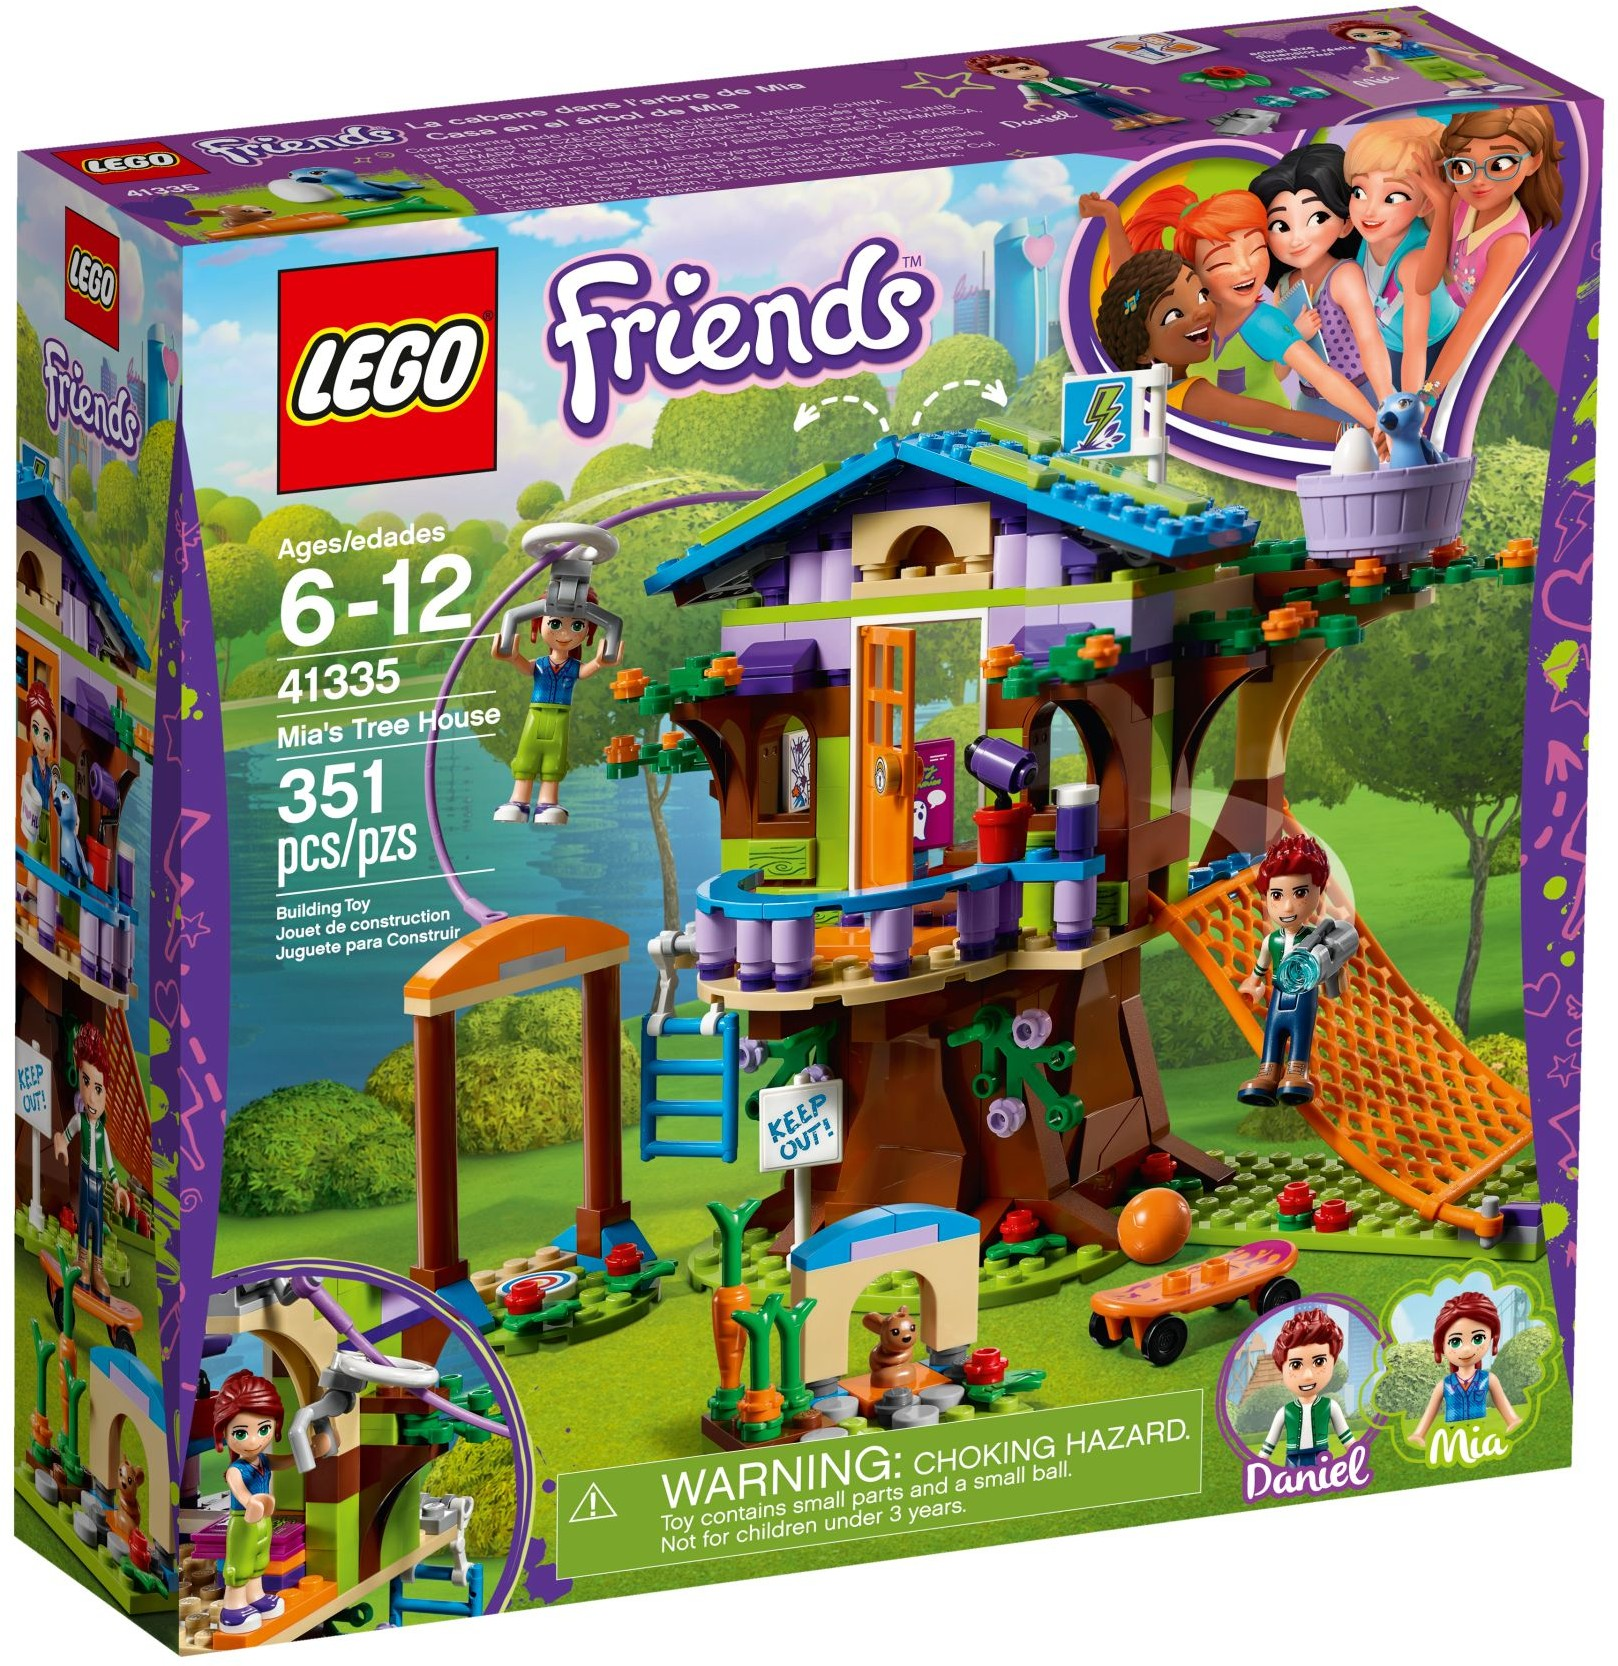 LEGO Friends Sets: 41335 Mia's Tree House NEW  *Damaged Box*